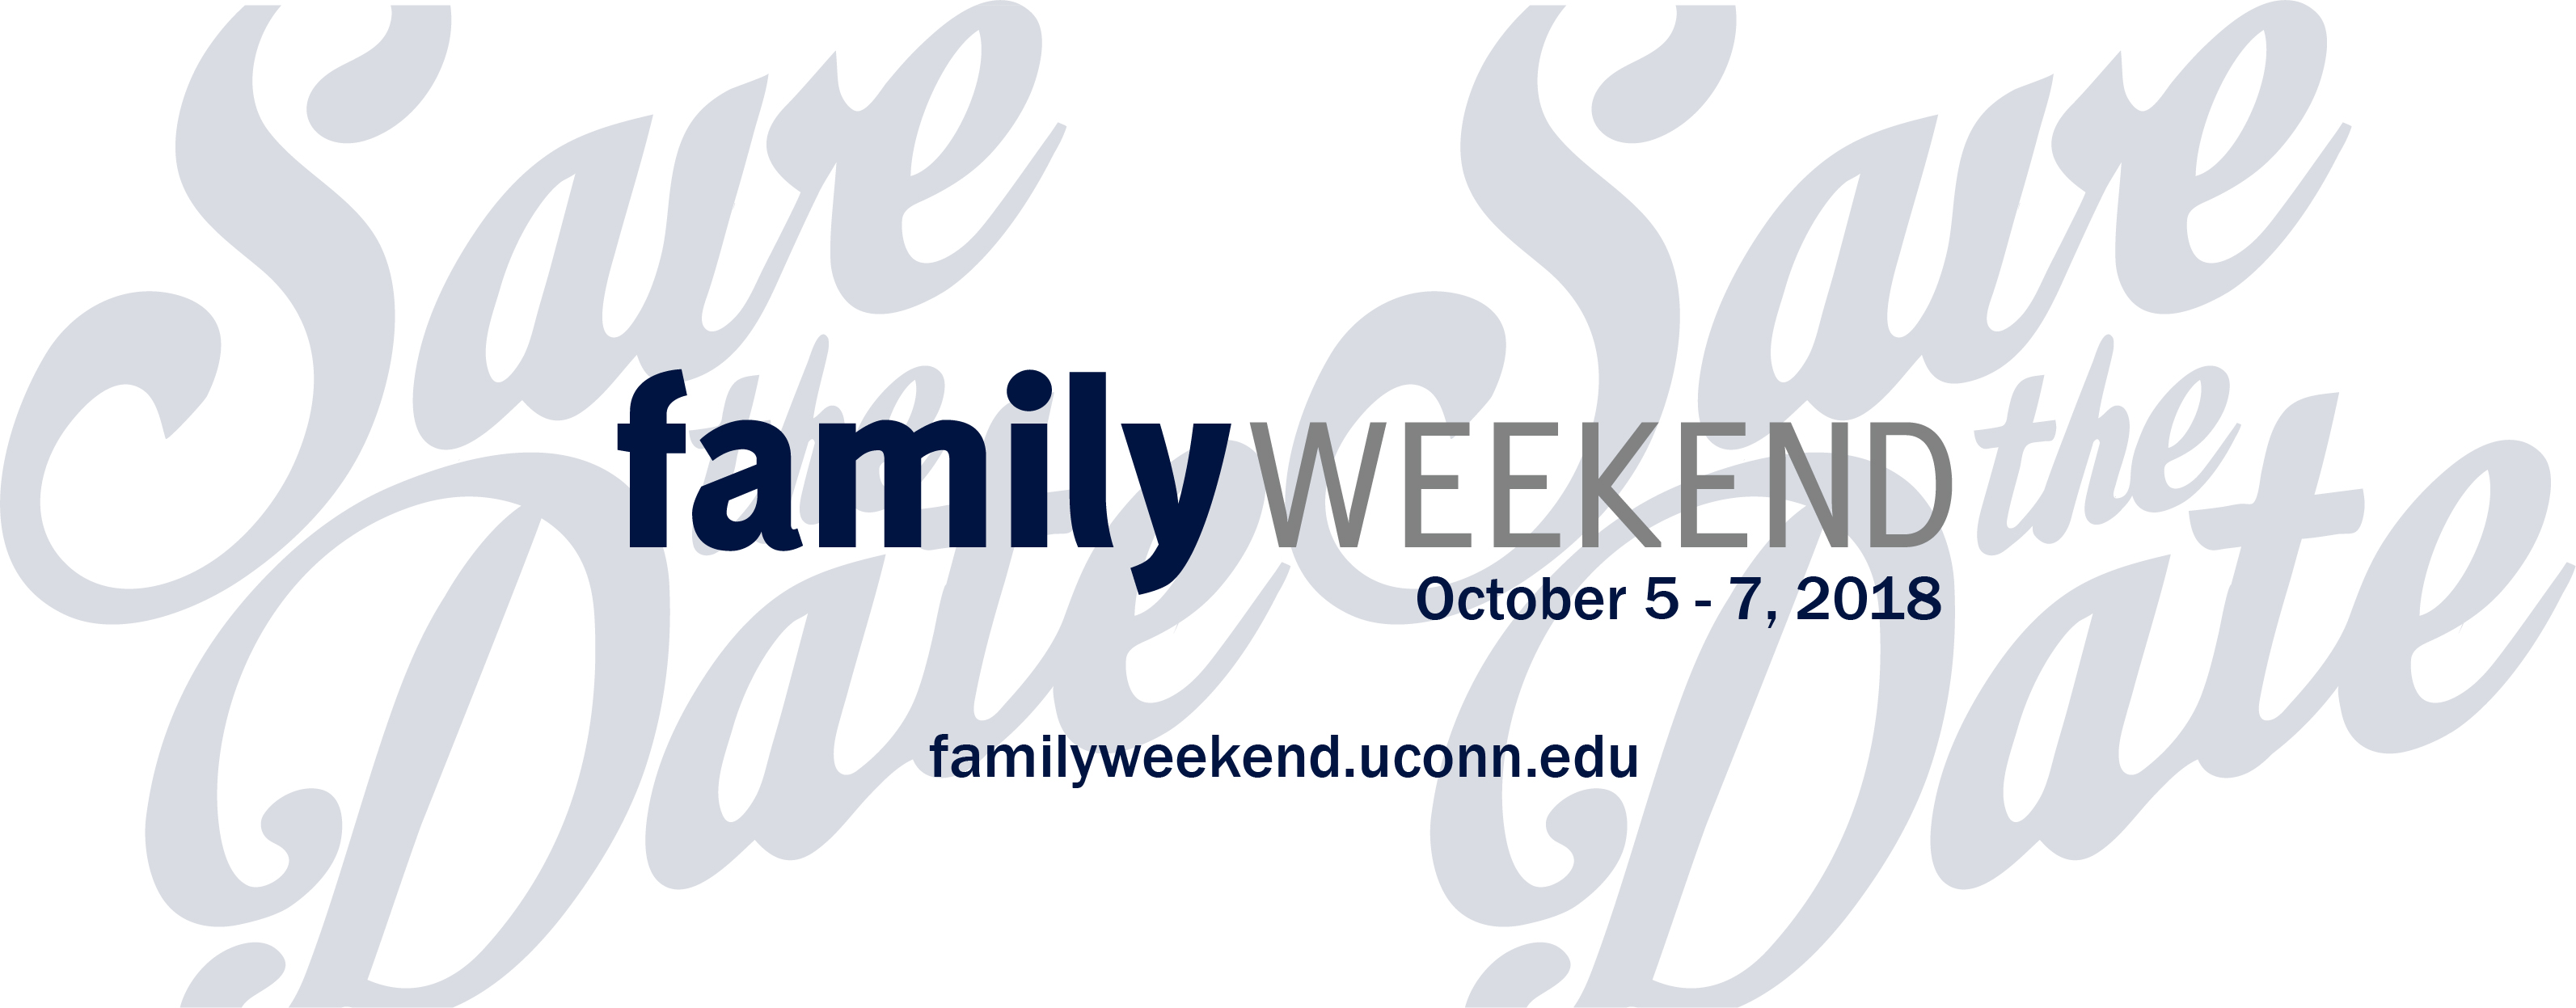 fam wknd save the date web banner 2018